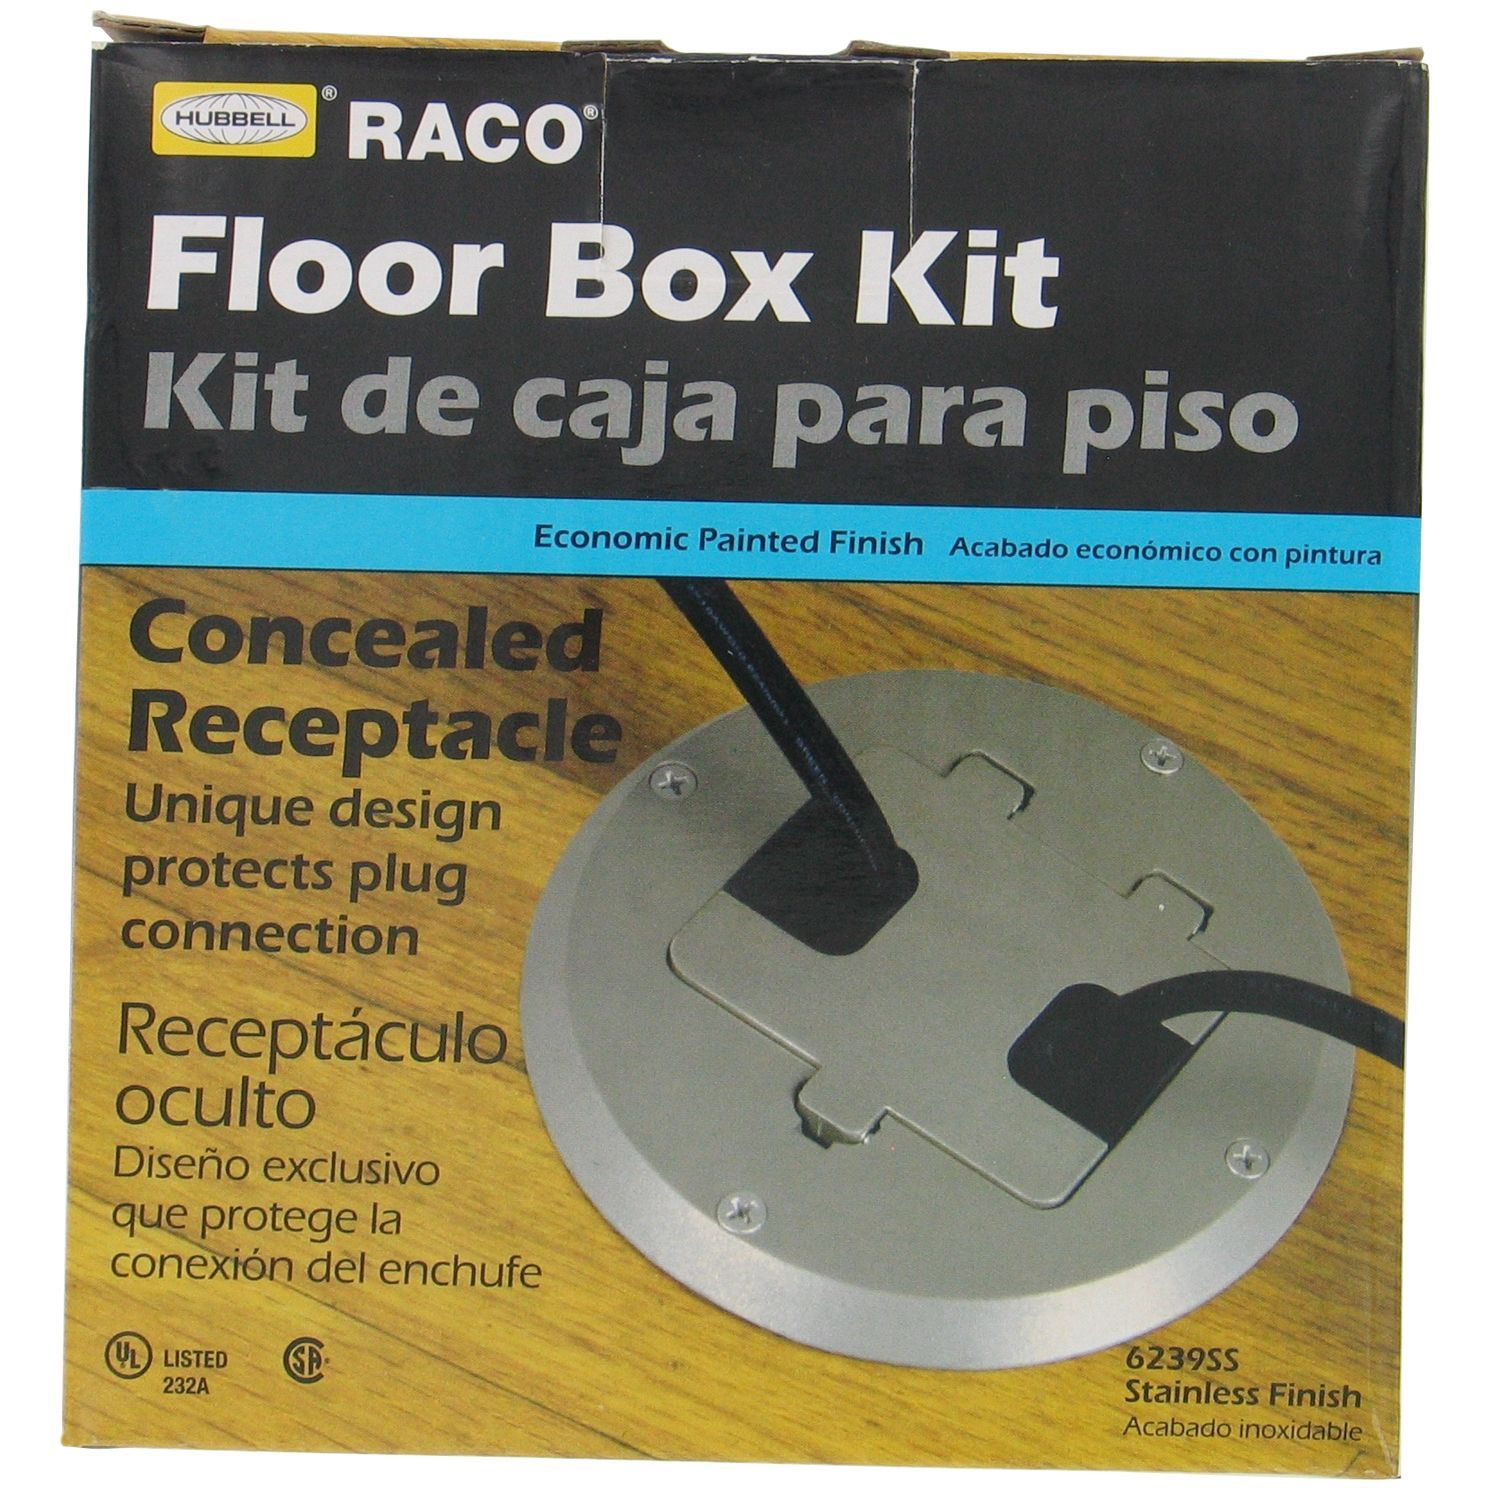 Hubbell Raco 6239SS Stainless Steel Concealed Receptacle Floor Box Kit (Other electrical), Black